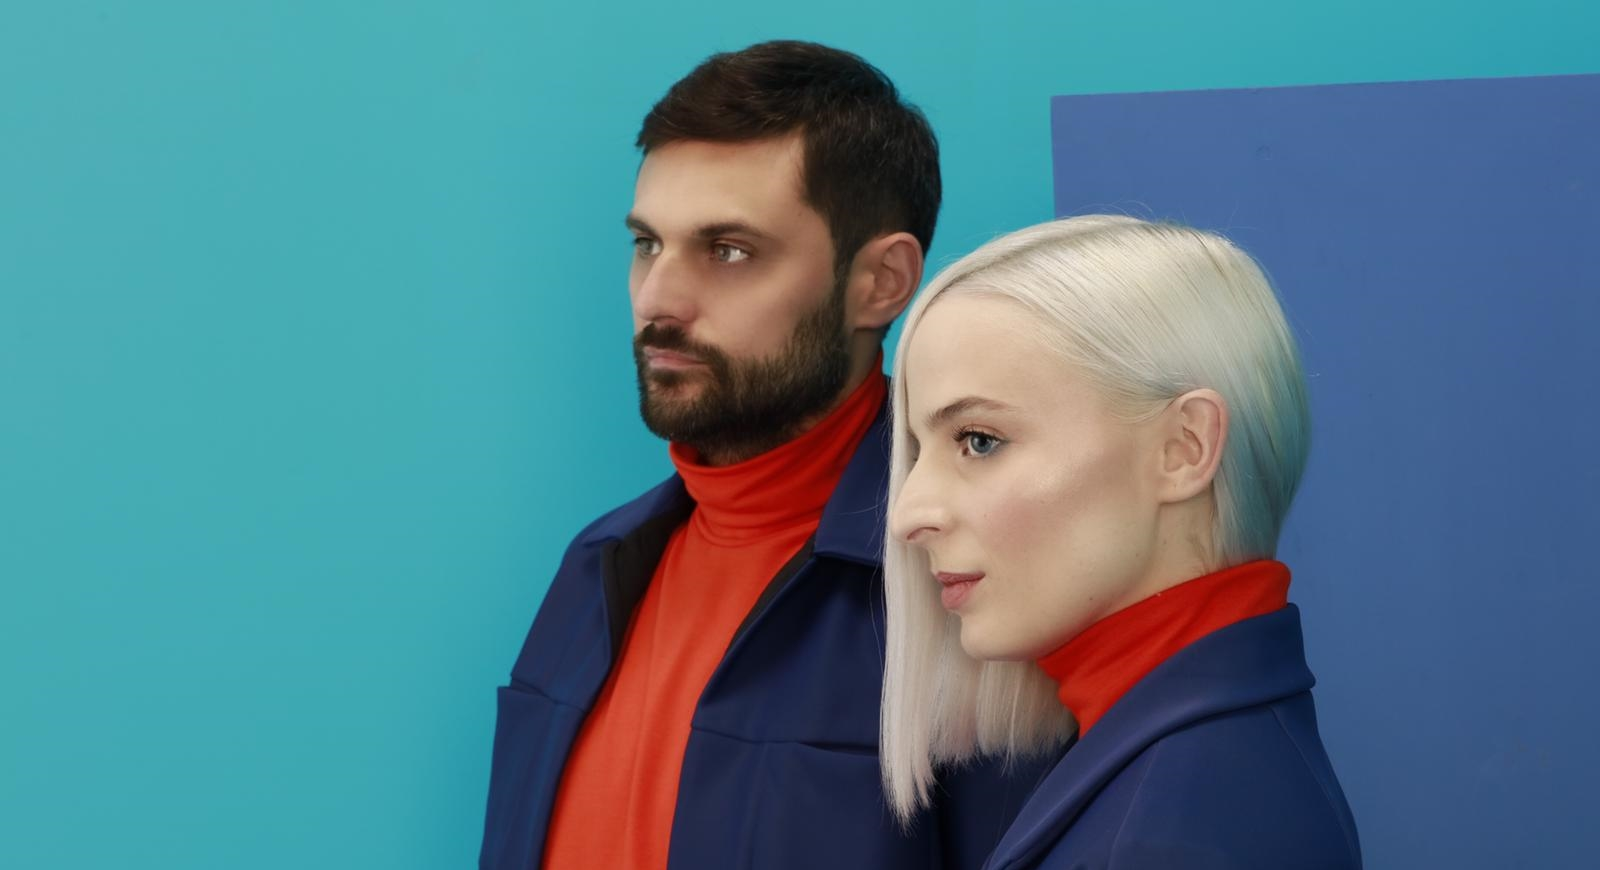 madame monsieur kyo clip les lois de l'attraction tandem